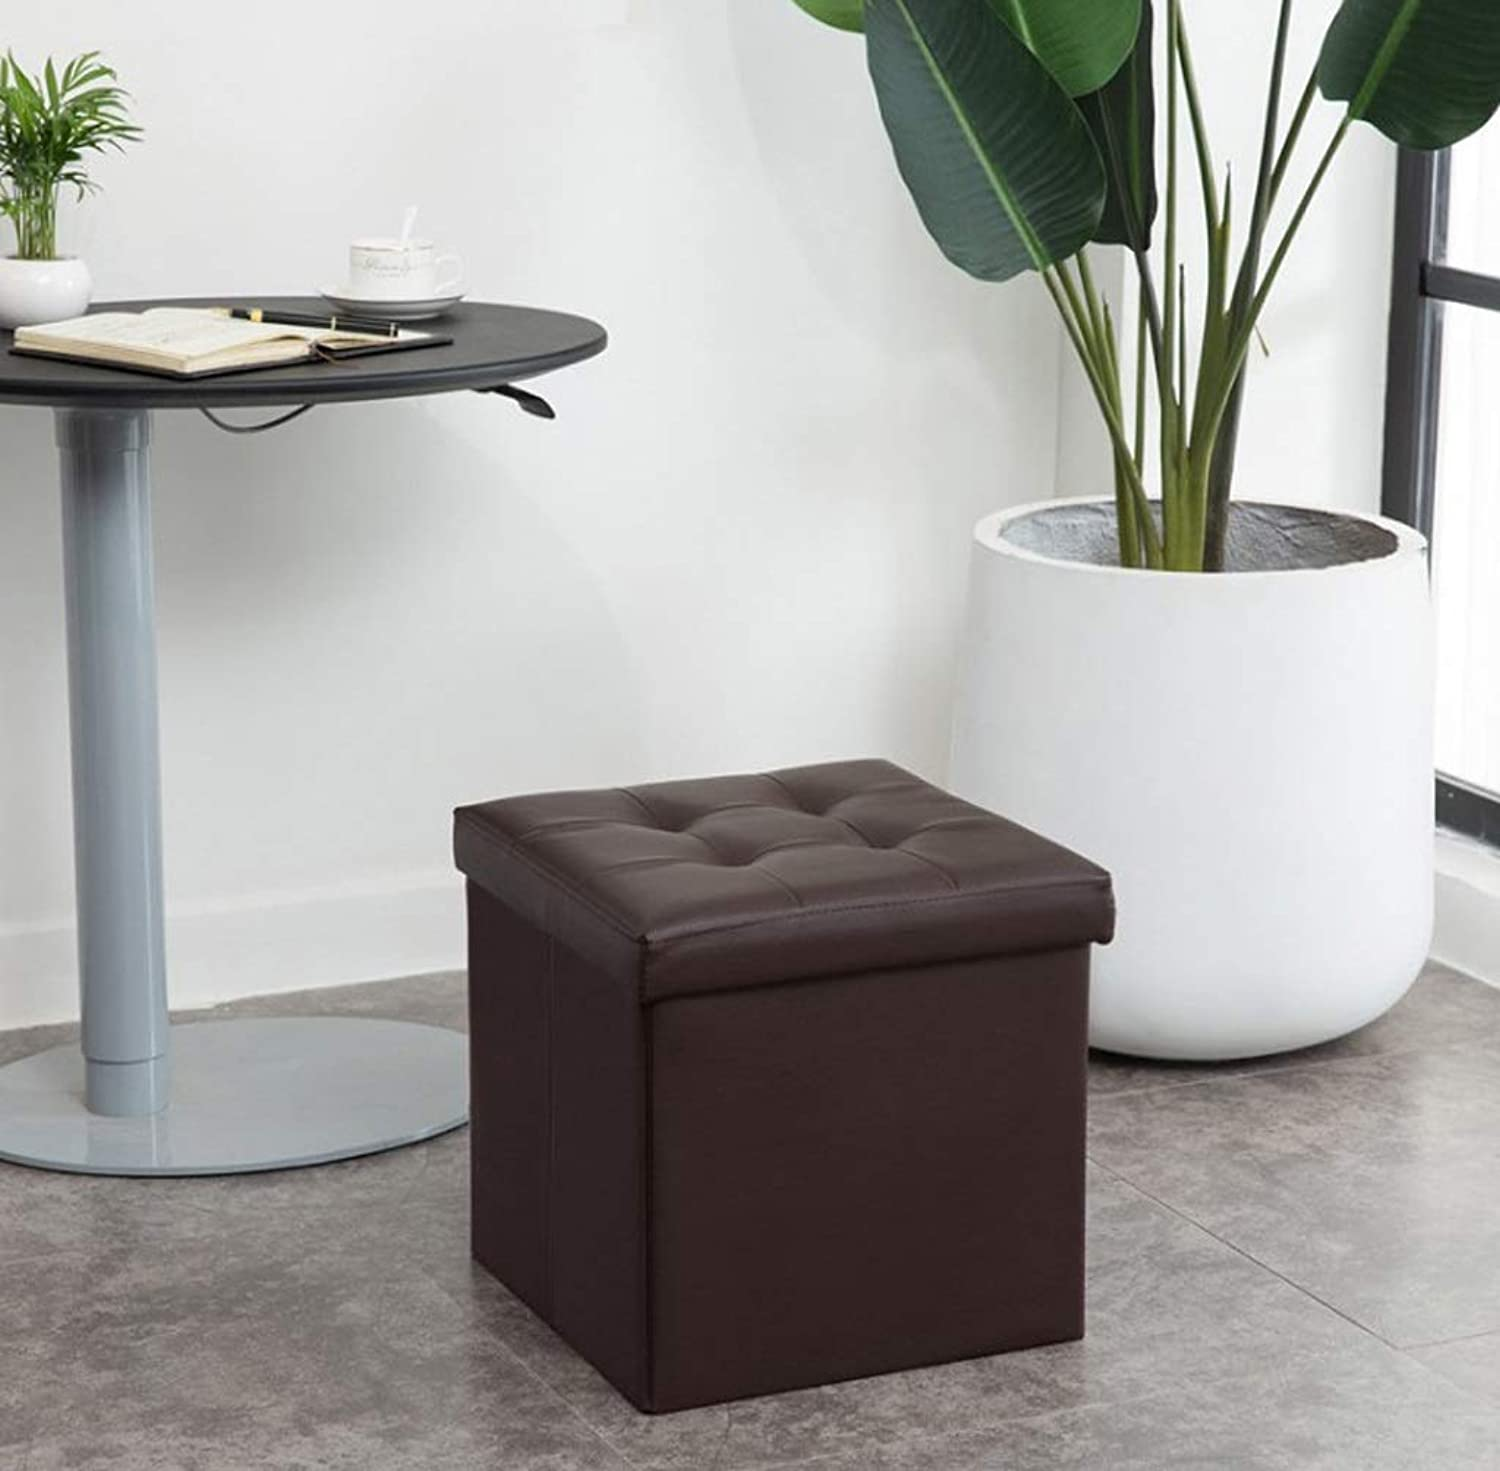 Leather Toy Storage Box Folding Storage Stool Linen Storage Box Fabric Storage Stool Hall Stool Small Stool Multi-Functional Seating Storage Box (color   Brown-S)